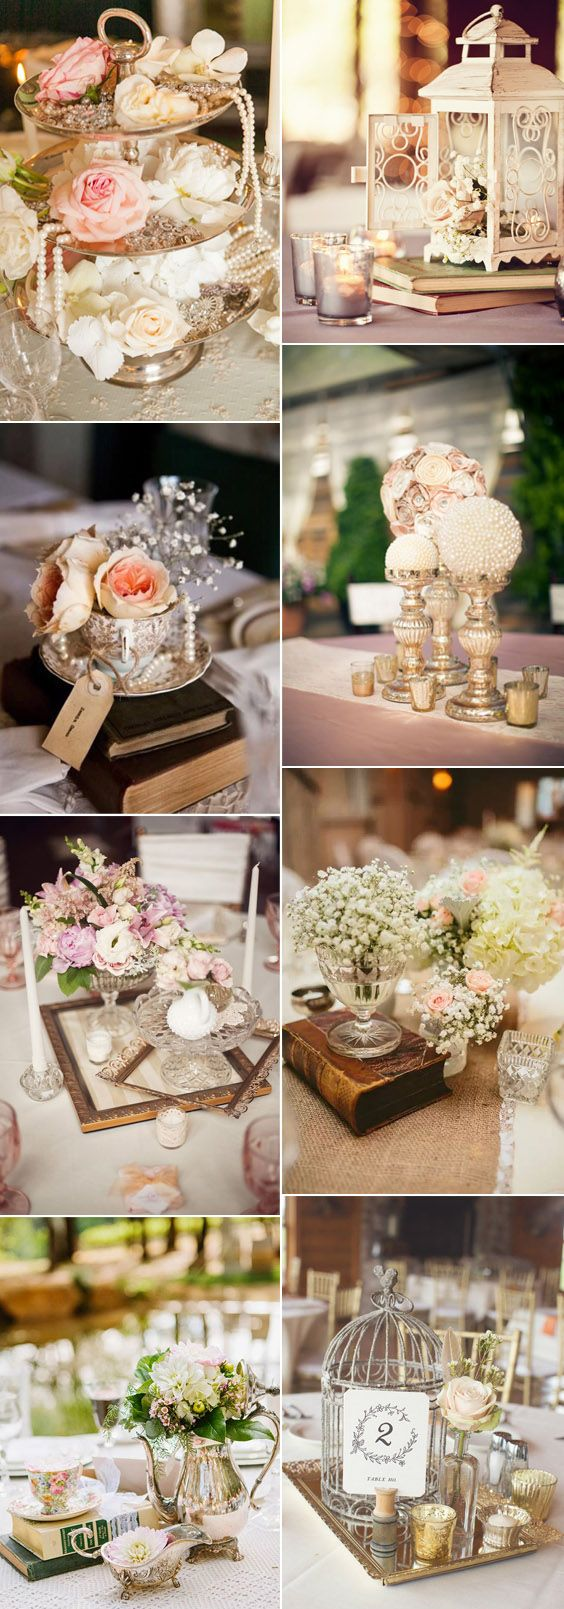 136 best wedding centerpieces images on pinterest | marriage